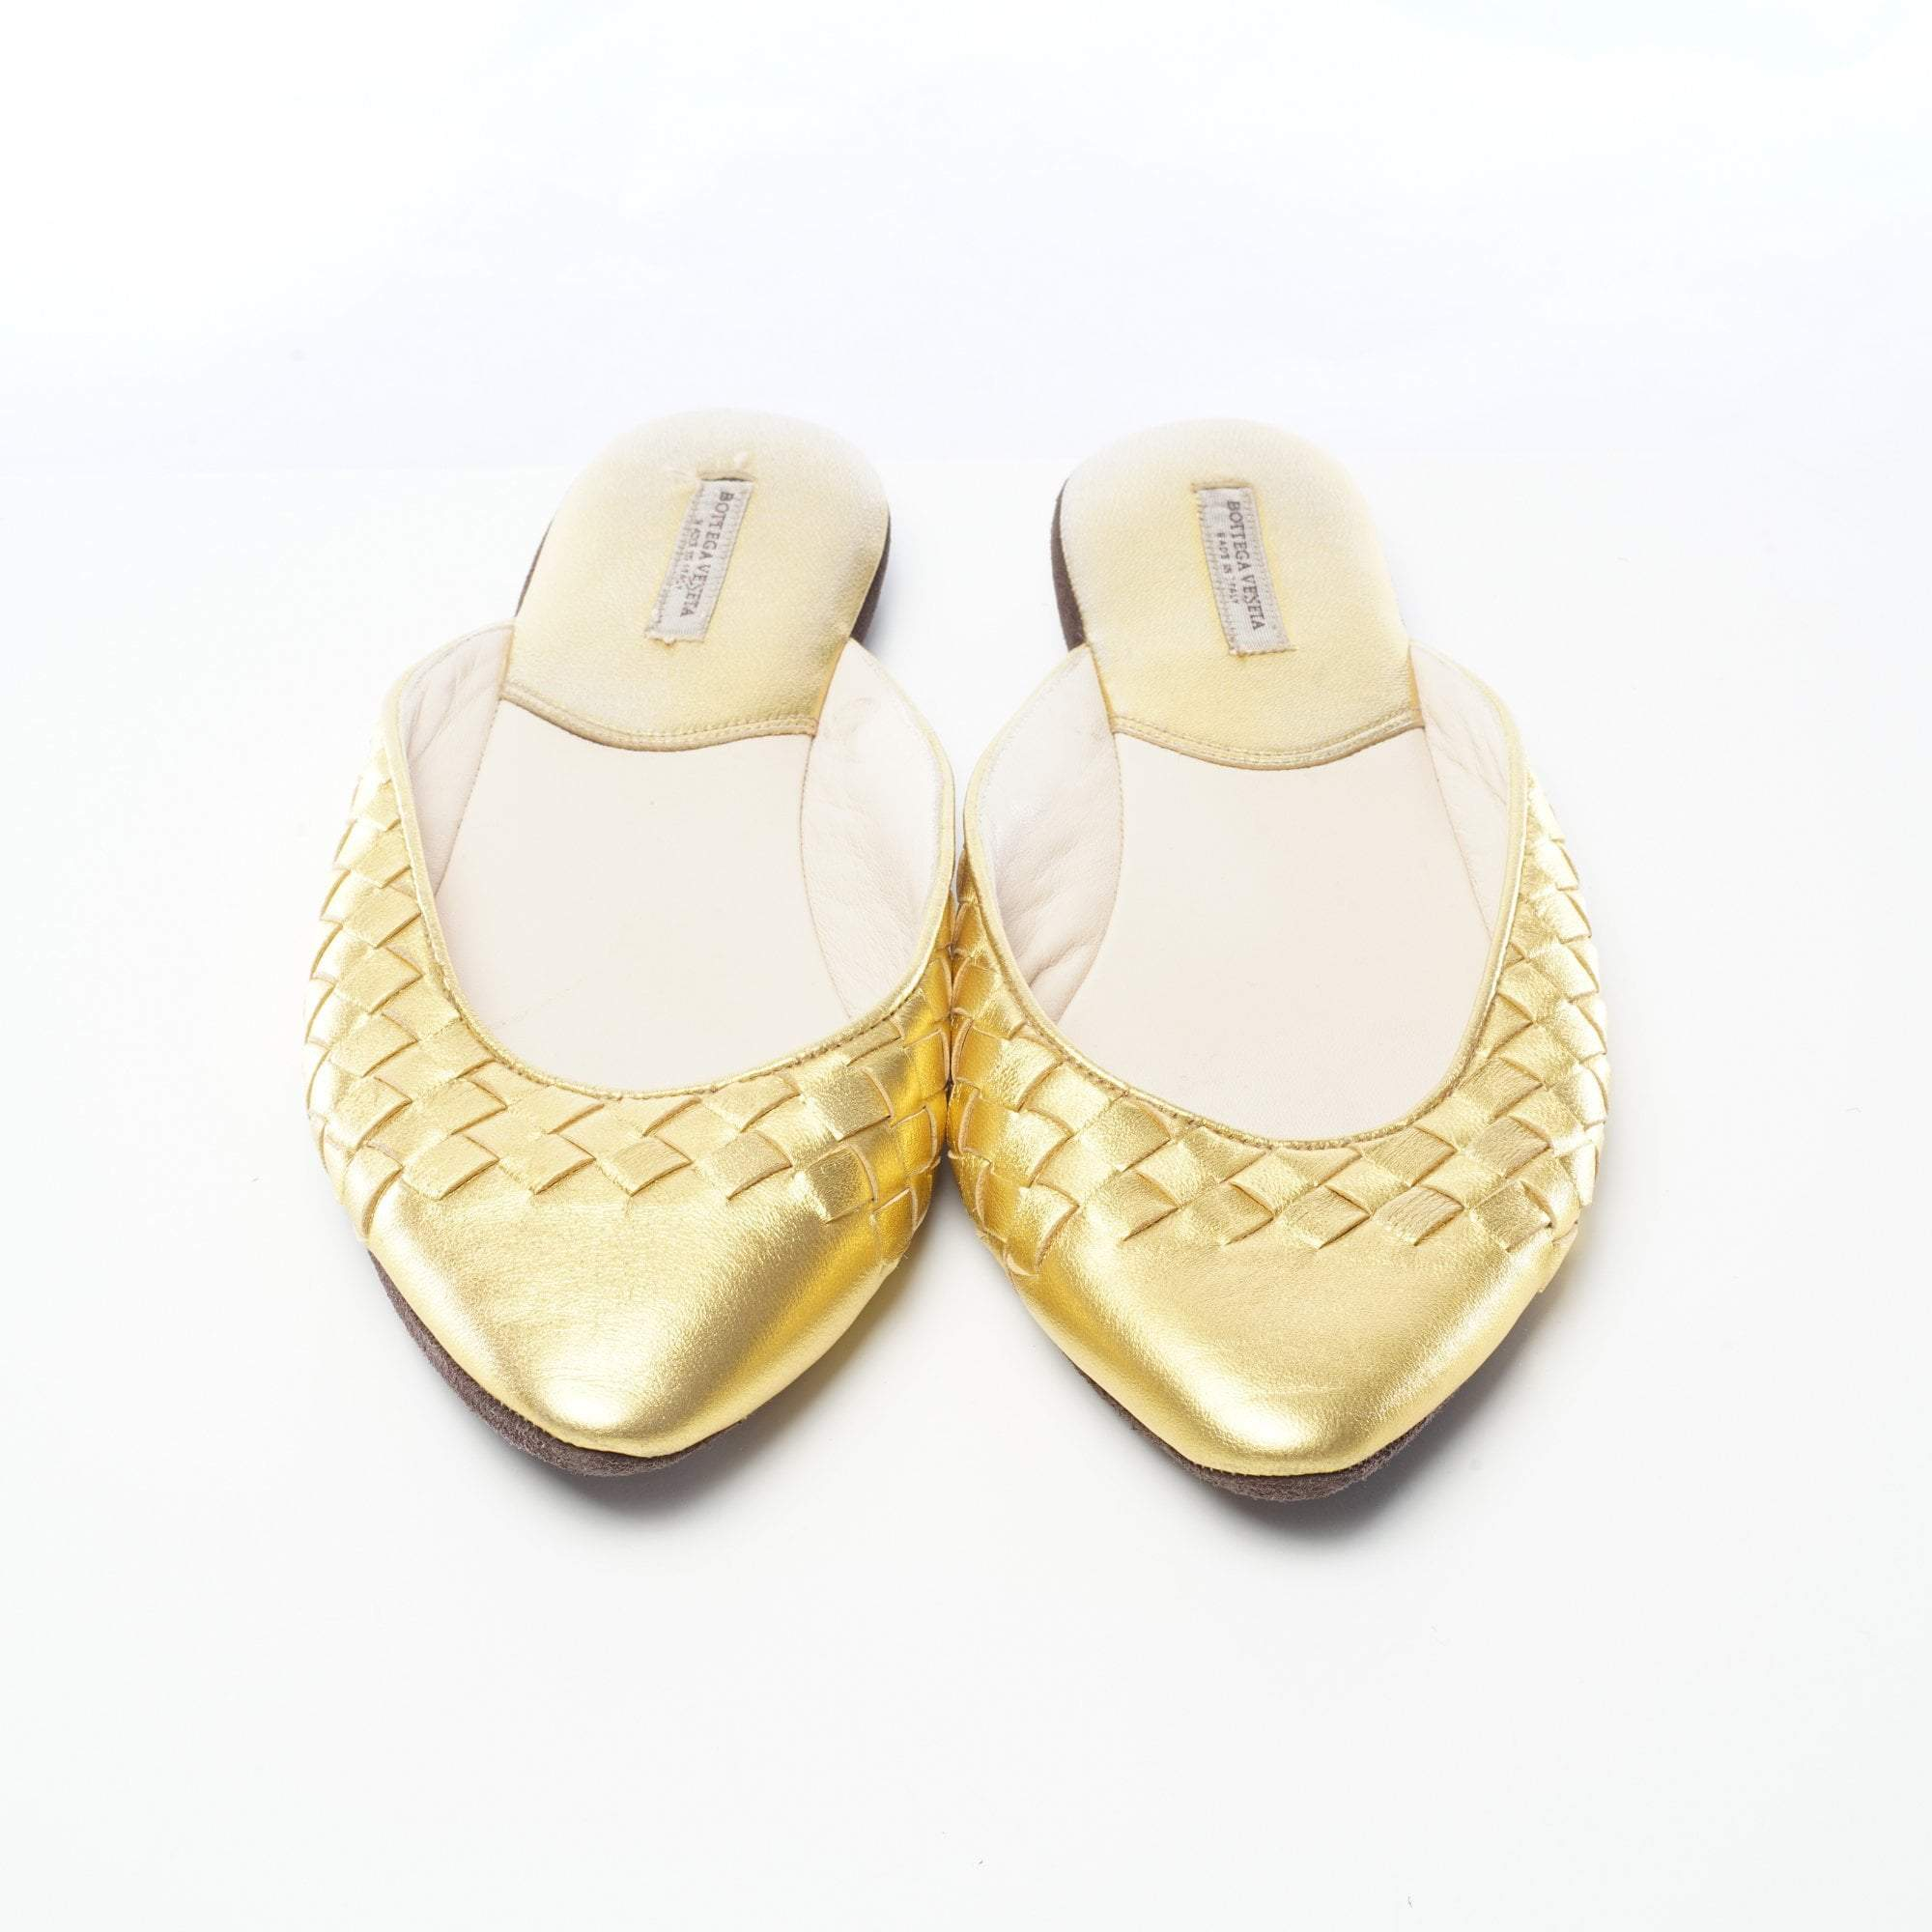 Bottega Veneta Metallic Intreciatto Slippers Light Gold